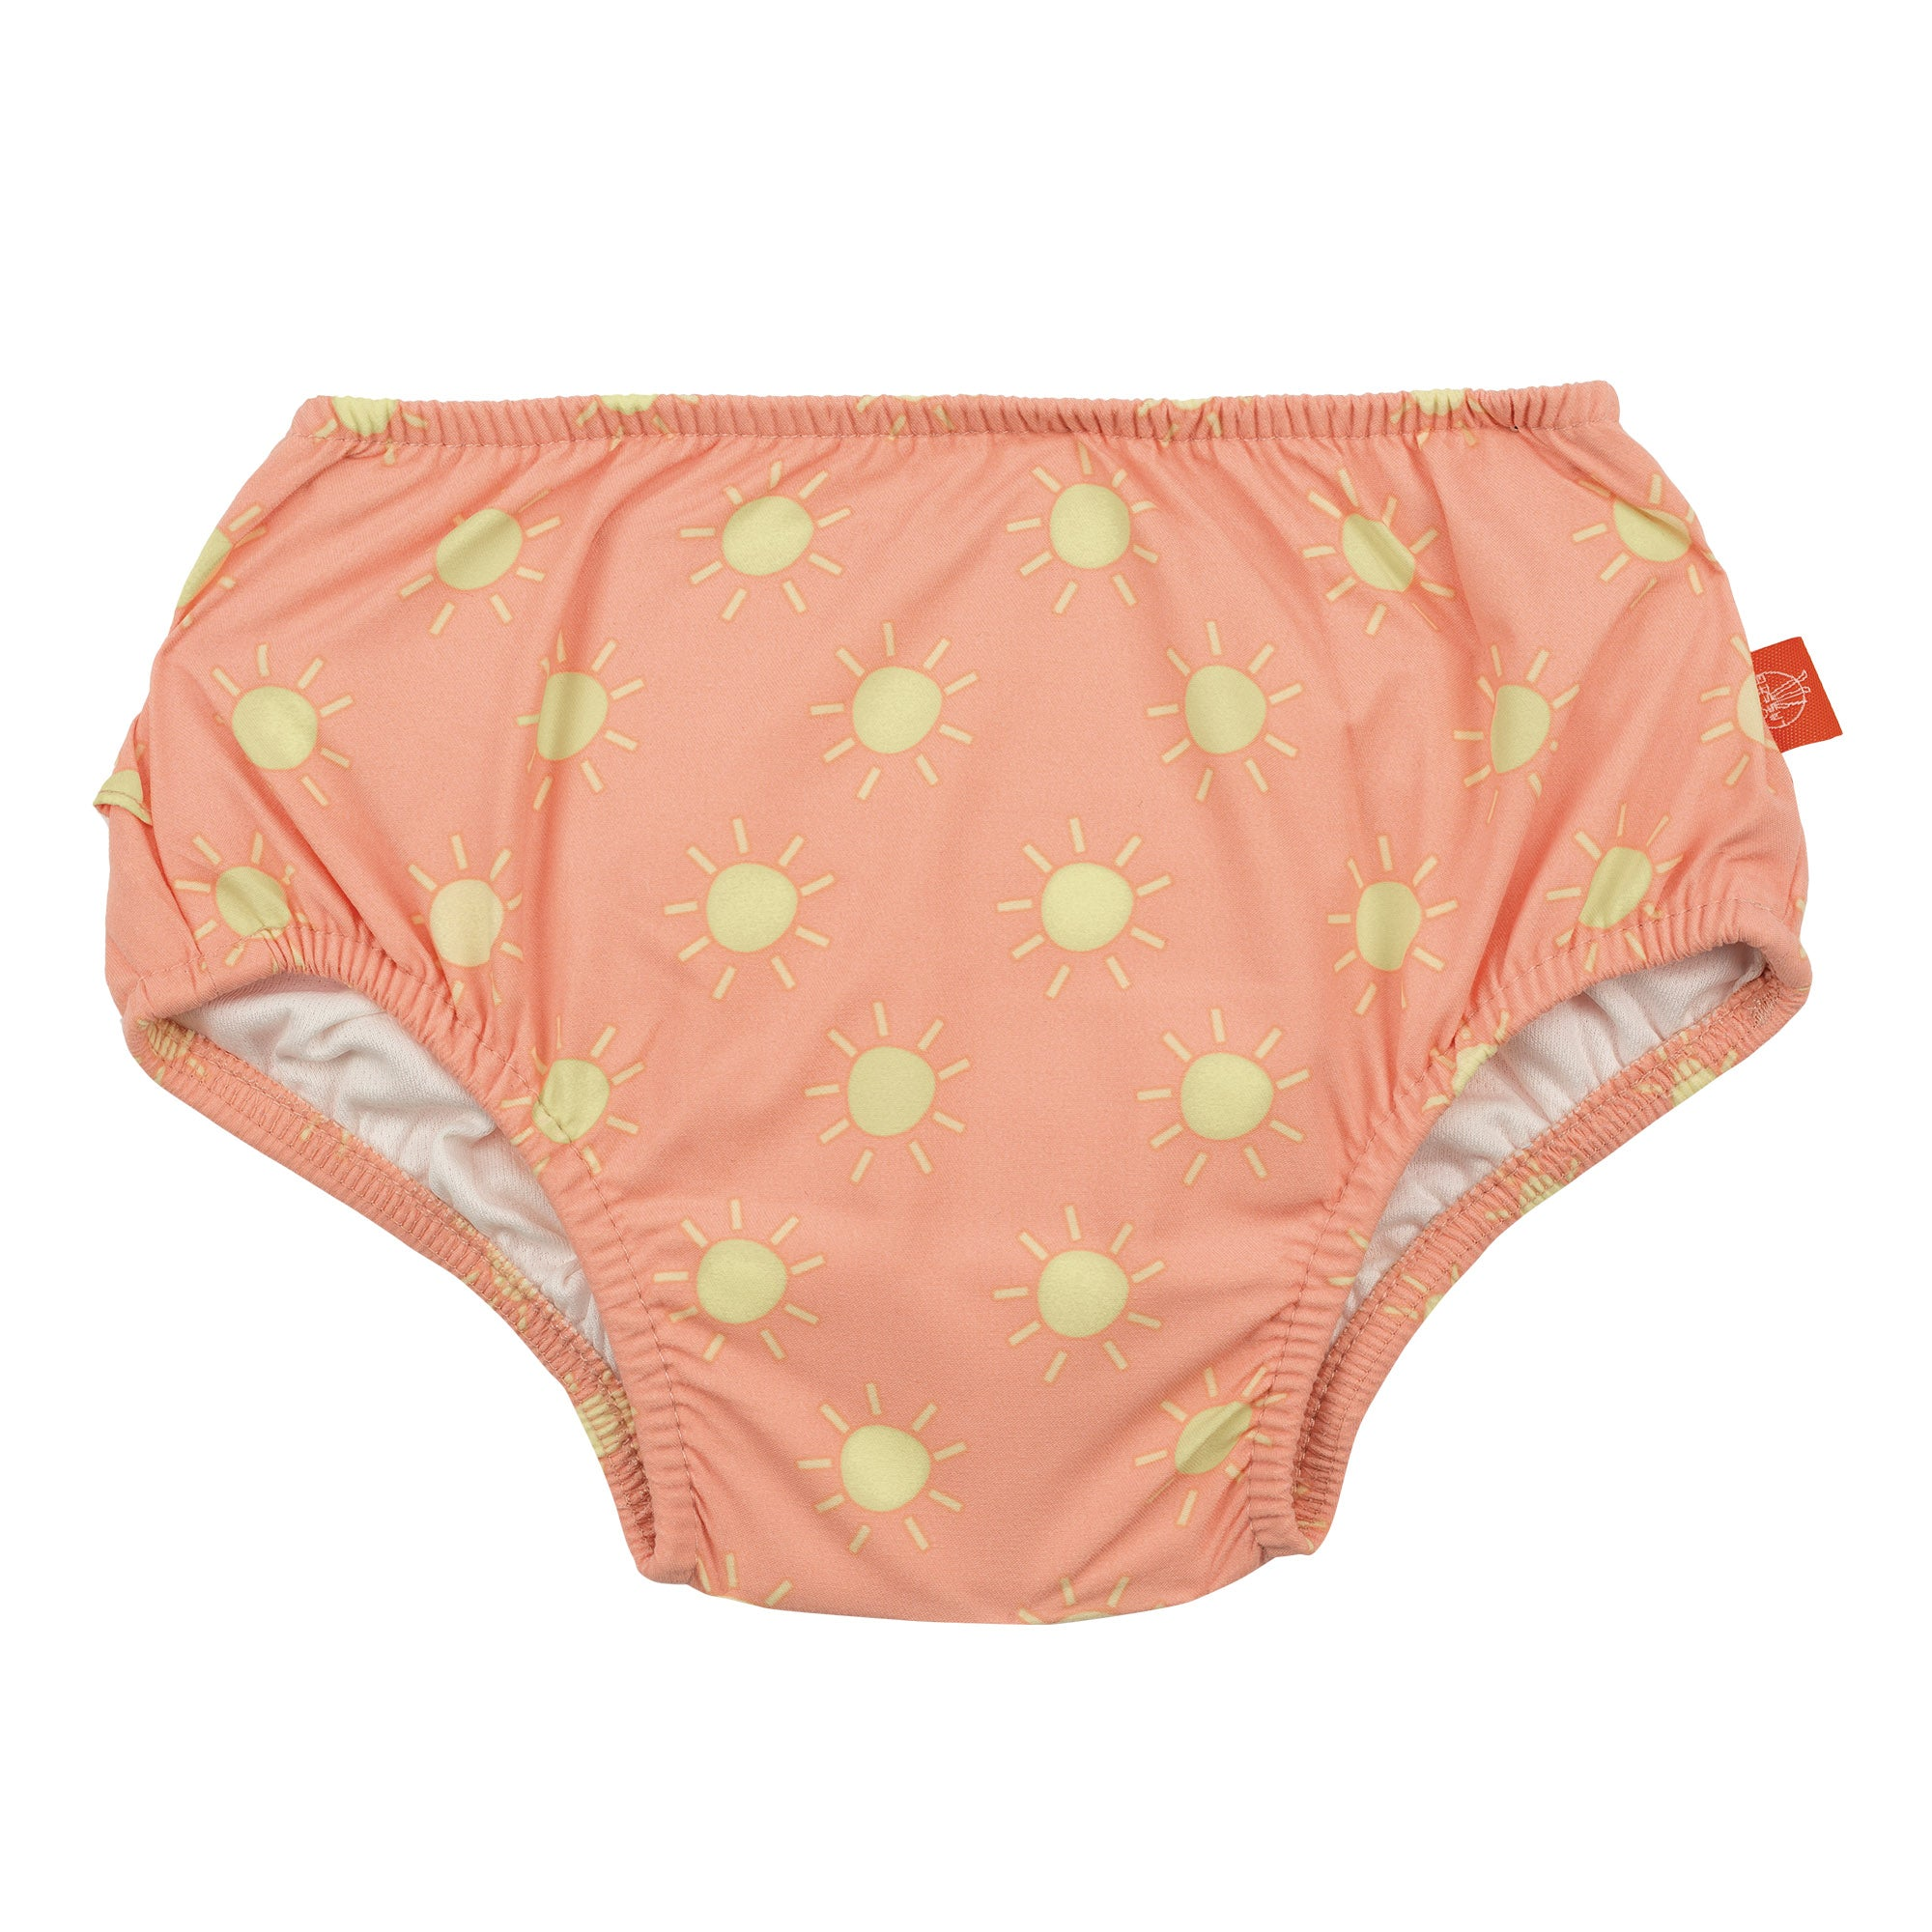 Lassig Girls Swim Diaper - Sun